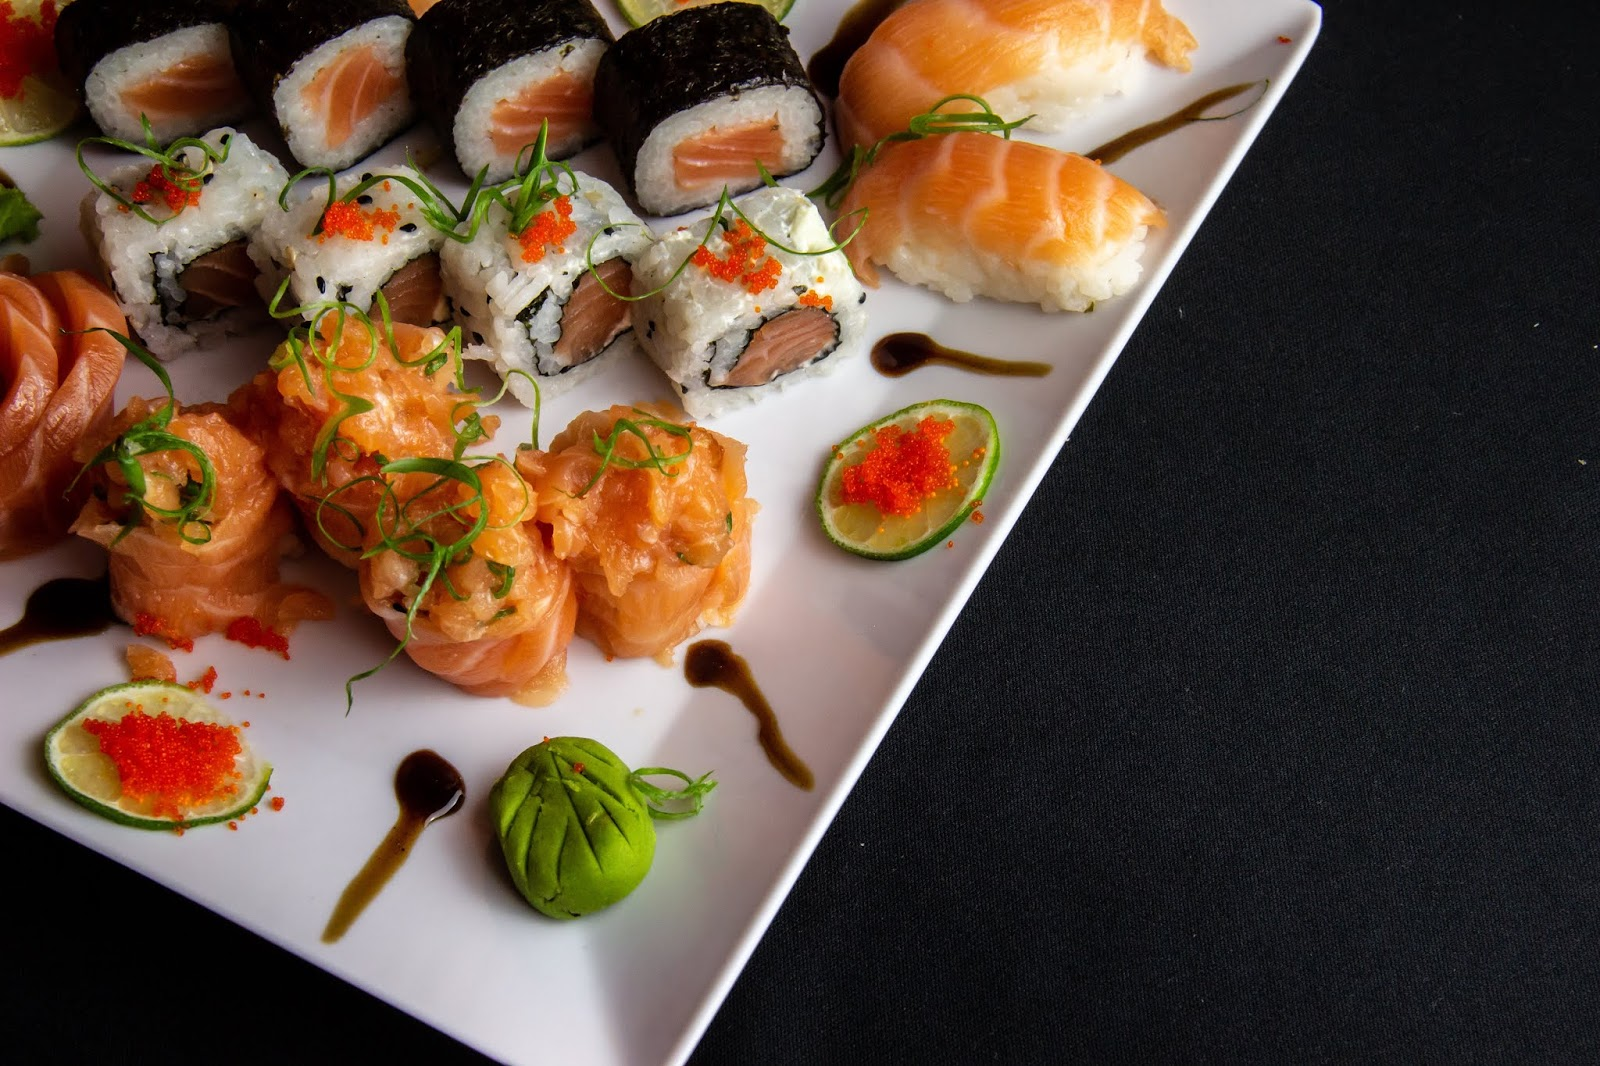 white-ceramic-plate-filled-with-sushi,food images